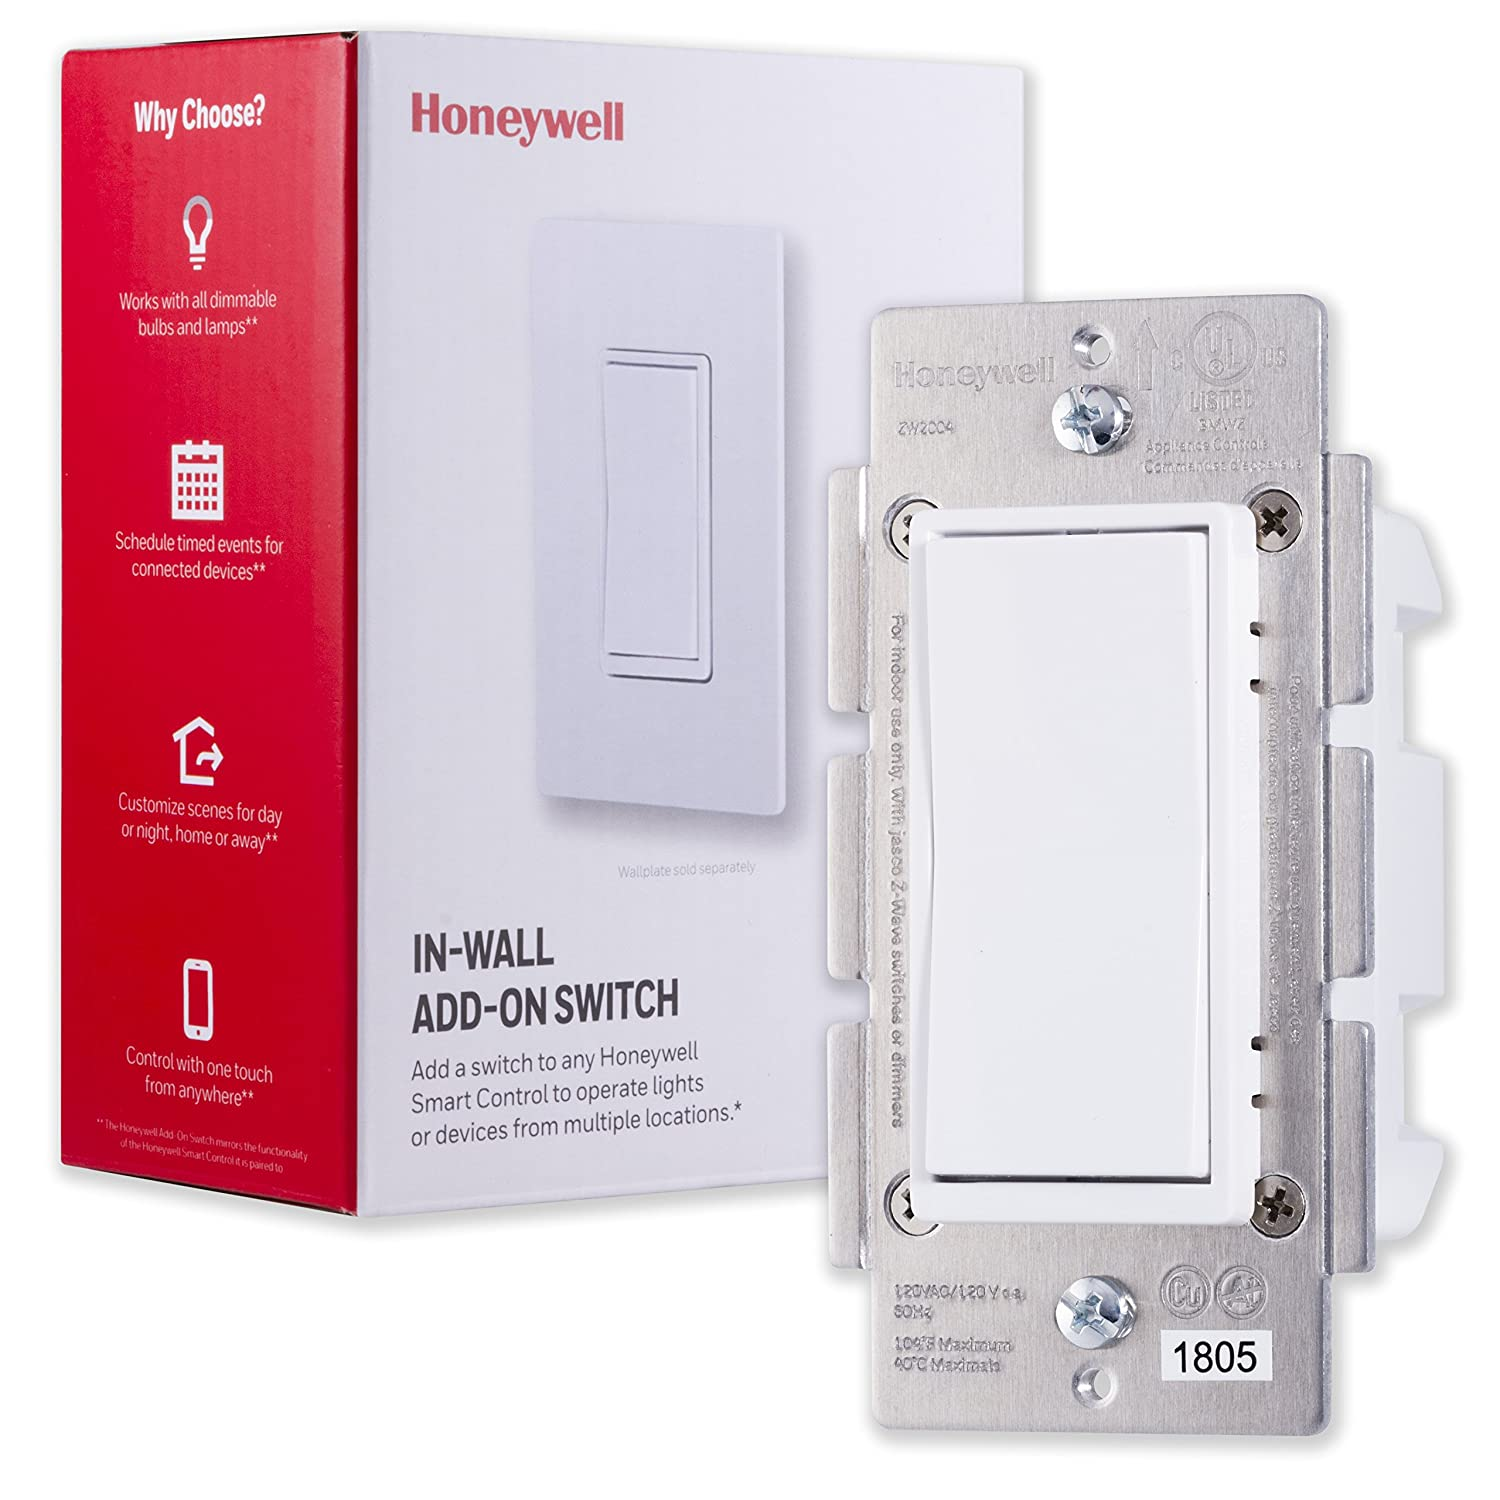 Honeywell Add-On In-Wall Paddle Switch only for Honeywell Z-Wave Smart Lighting Controls | NOT A STANDALONE SWITCH |White & Almond Paddles |for 3 4 & 5-Way Multi-Location Installations, 39350